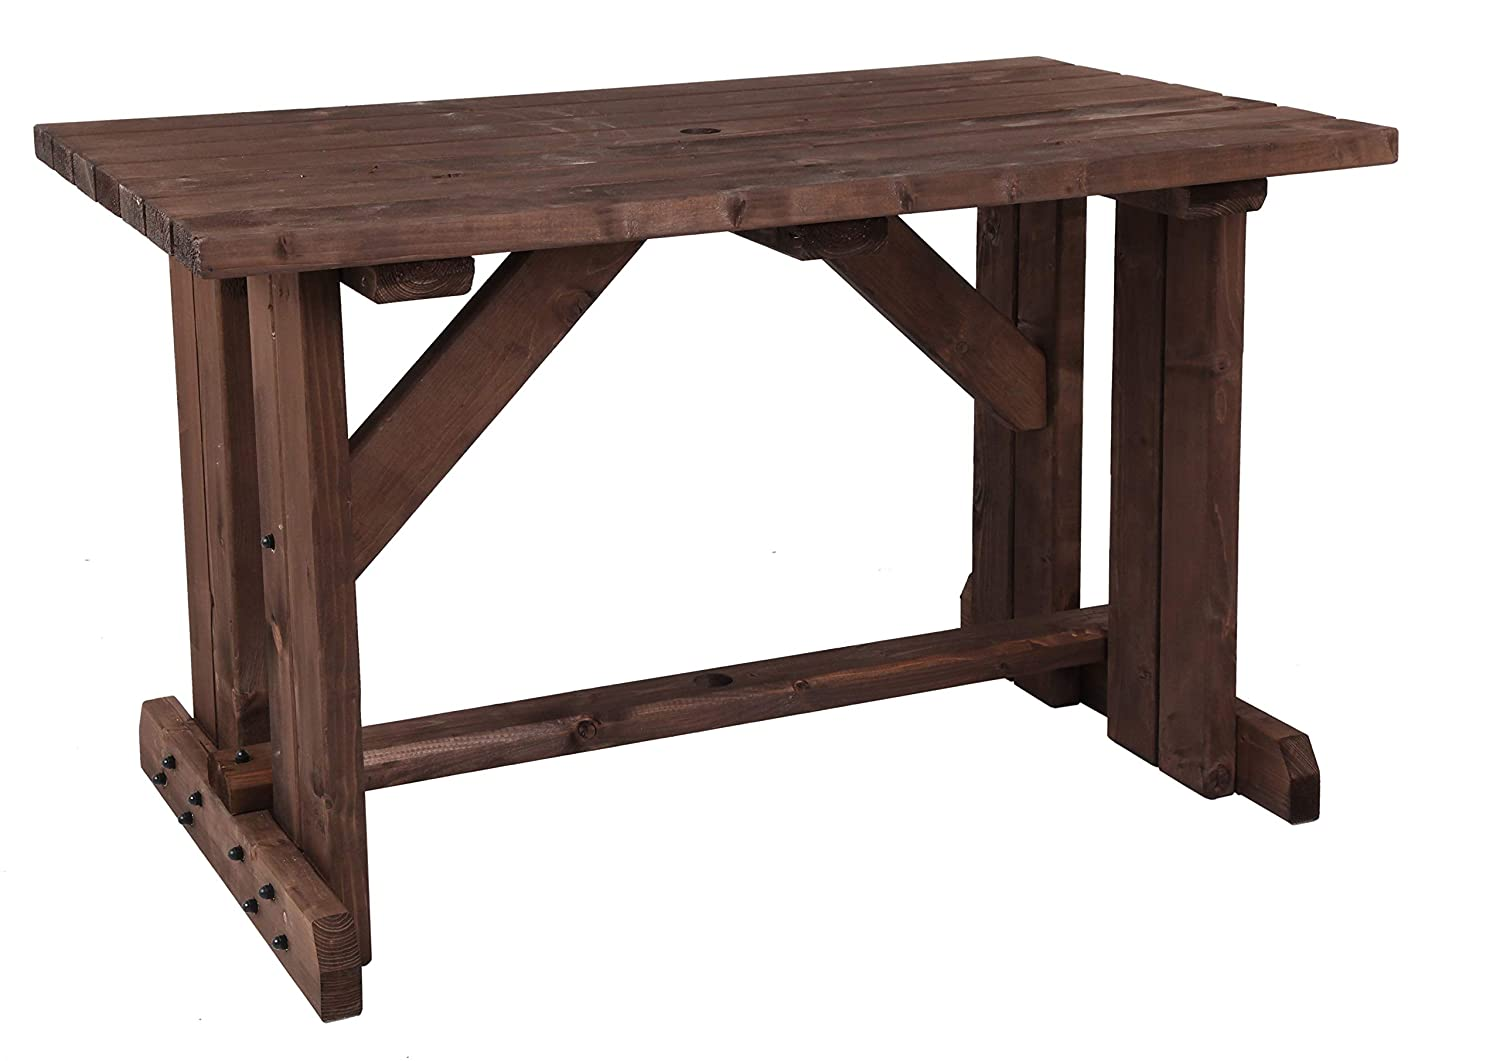 MC TIMBER PRODUCTS LTD 4ft Garden Table in Rustic Brown Stain - Garden Furniture - BBQ Table - Dining Table